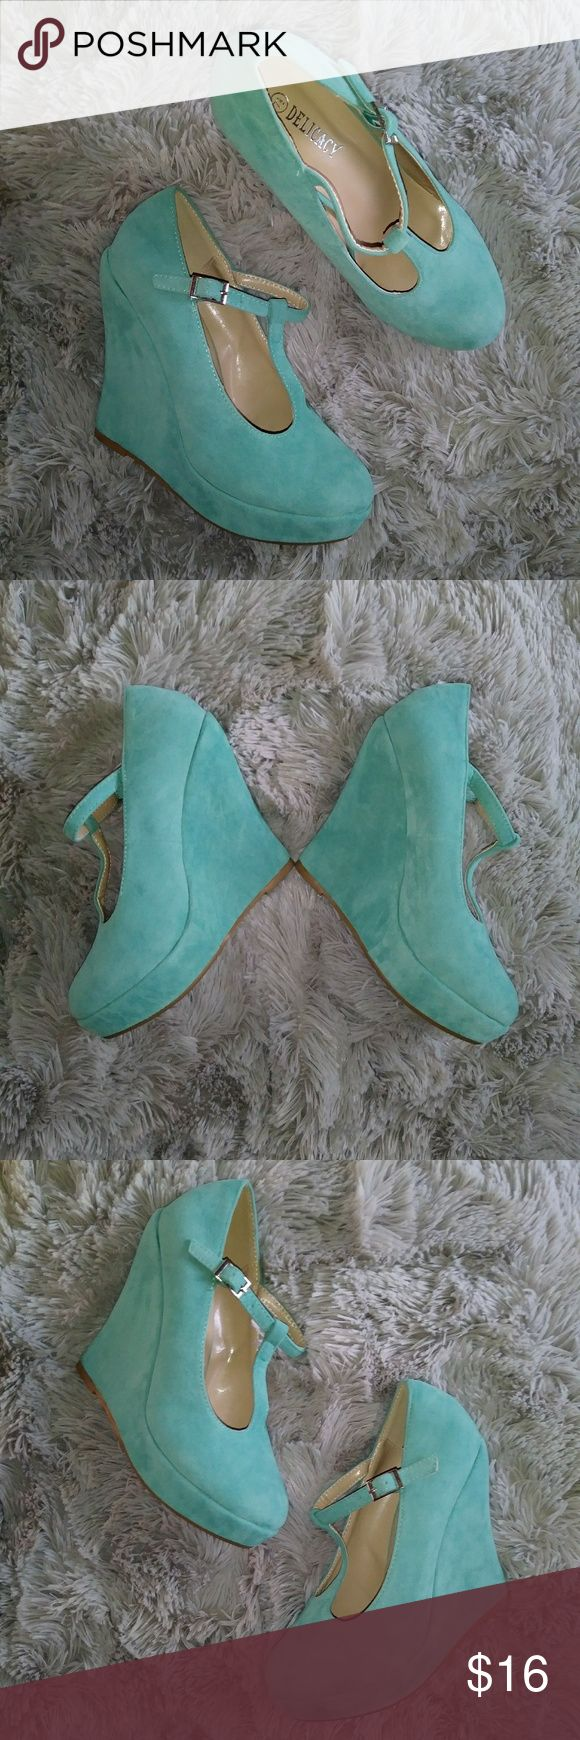 "Delicacy Mary Jane Mint Wedge Heels New condition Suede material Size: 7"" 1/2 Height: 5""   Bundle your likes and receive a 10% discount. Delicacy Shoes"